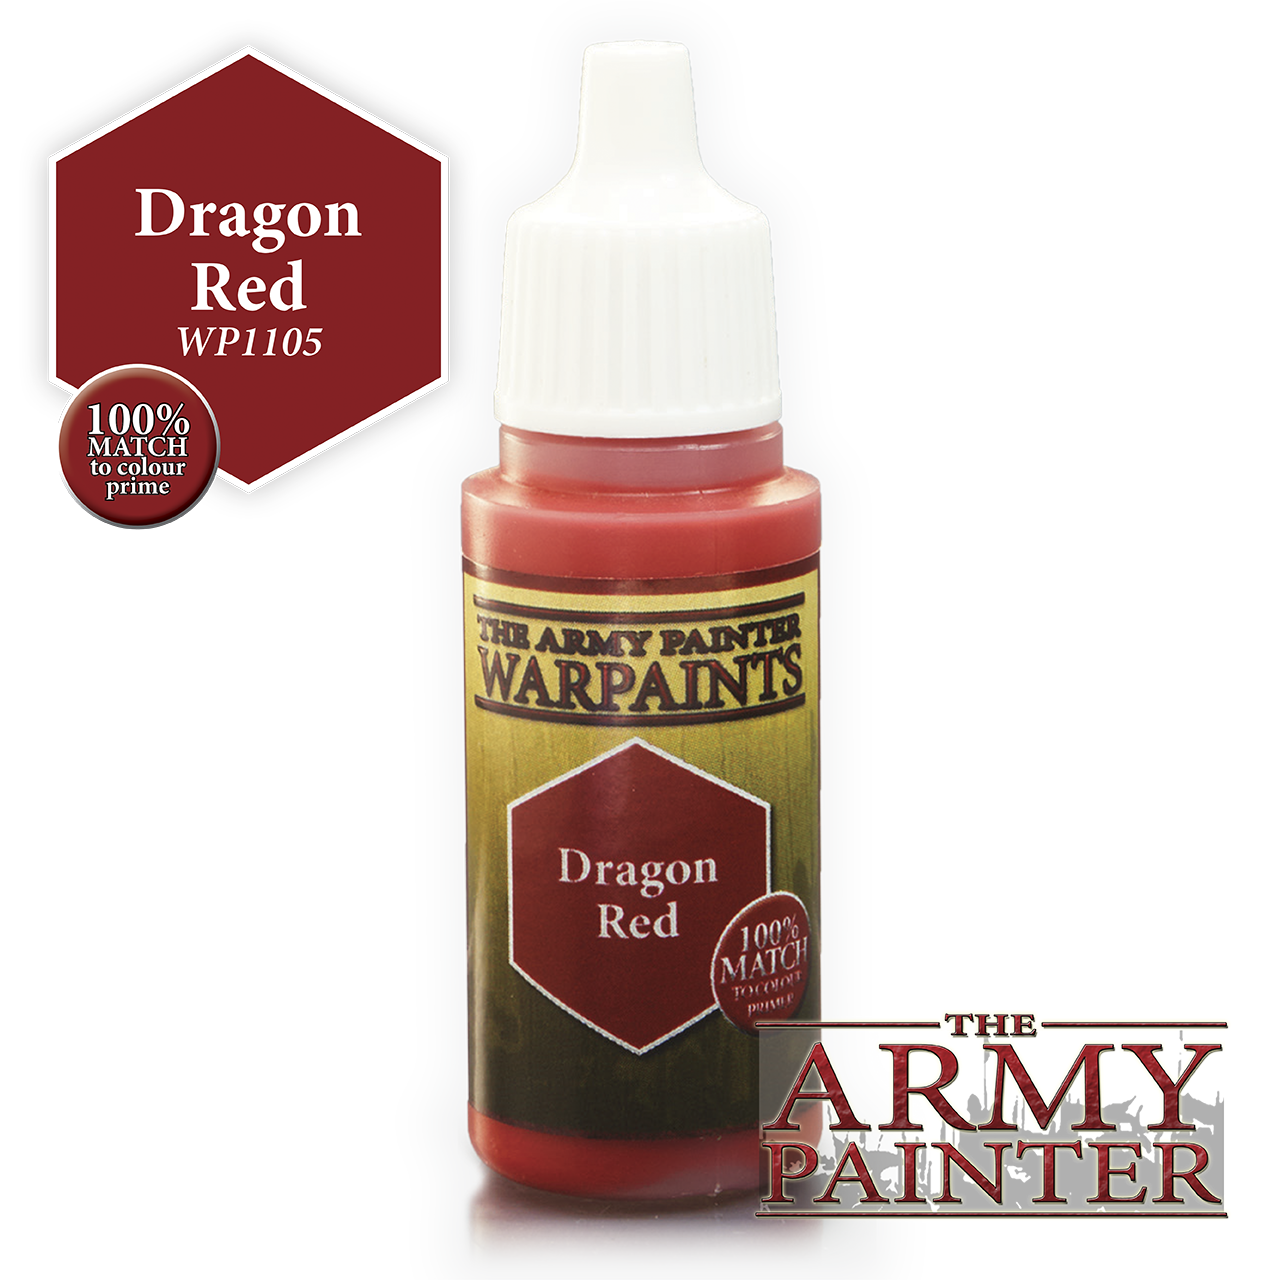 The Army Painter Warpaints: Dragon Red (18ml)